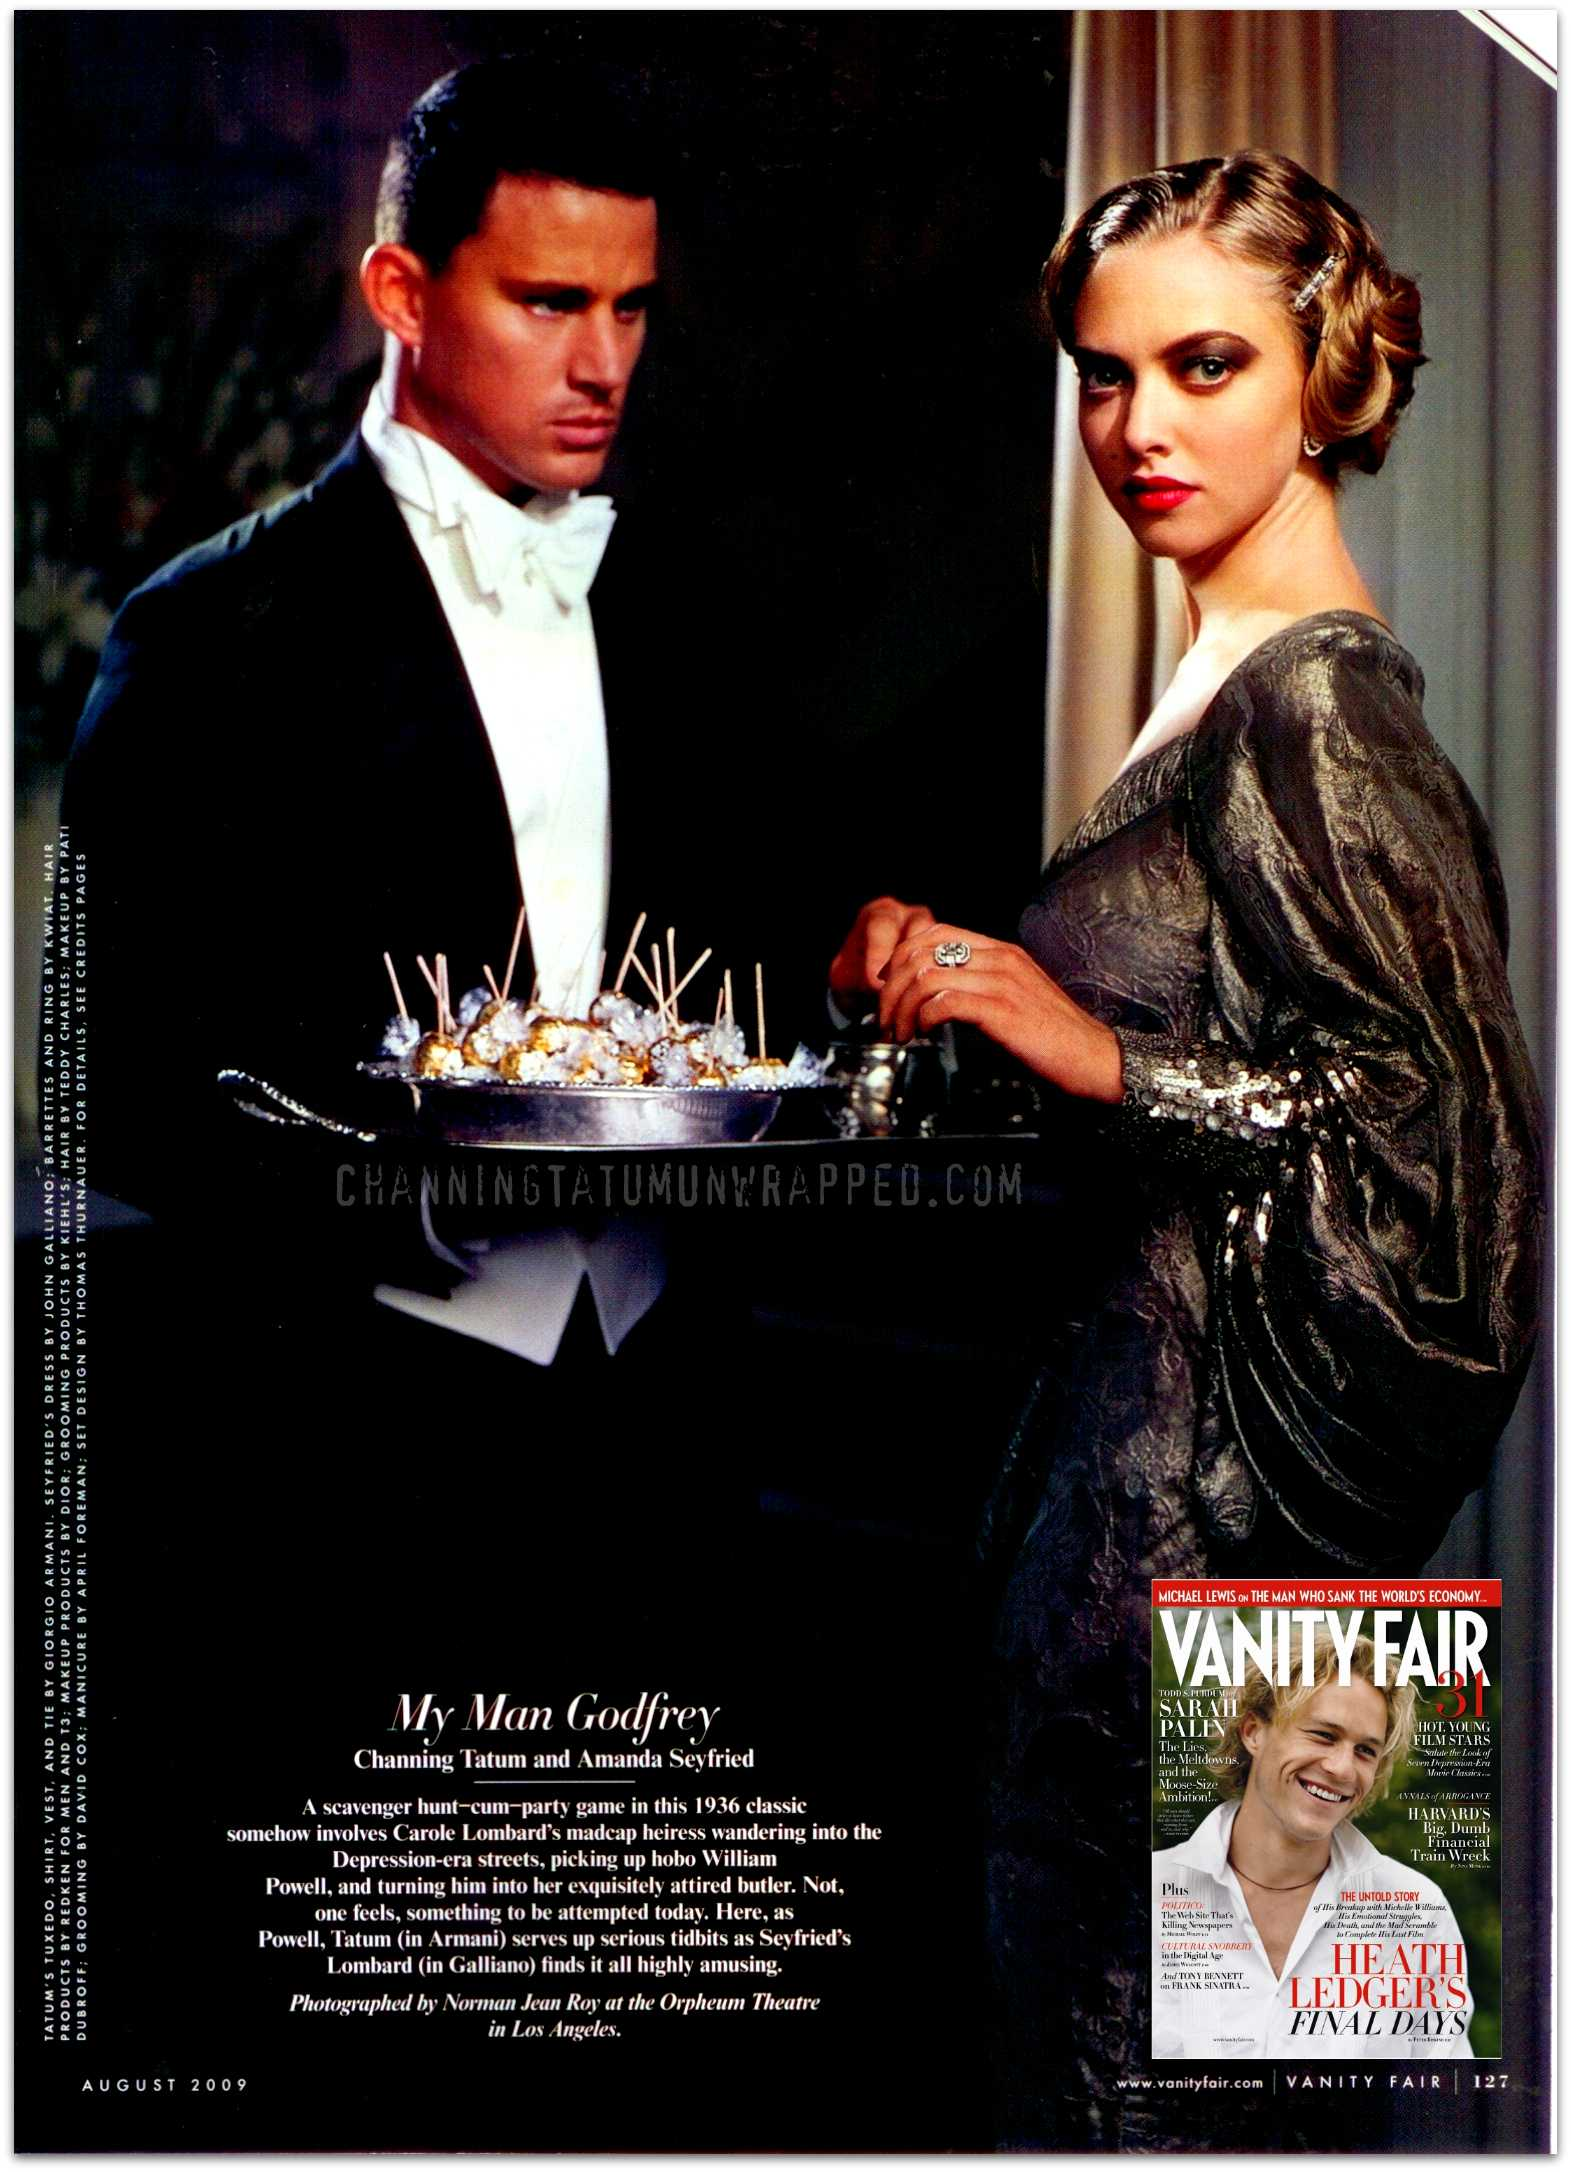 CTU EXCLUSIVE: Channing Tatum and 'Dear John' Co-Star Amanda Seyfried Featured in August 2009 Vanity Fair